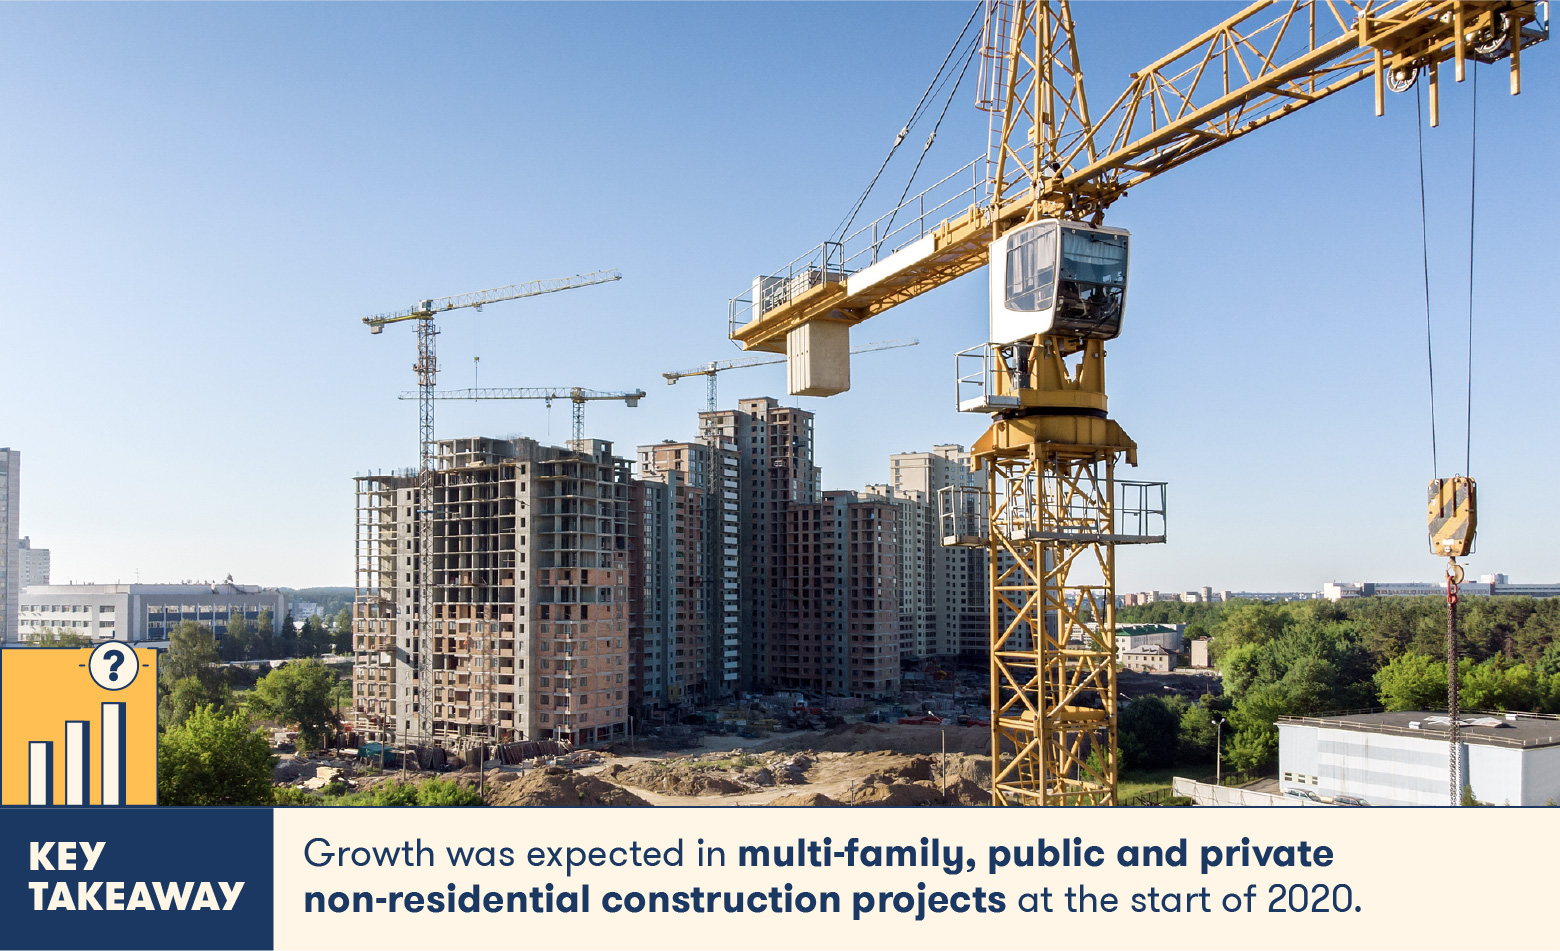 growth was expected in multi family, public and private construction projects